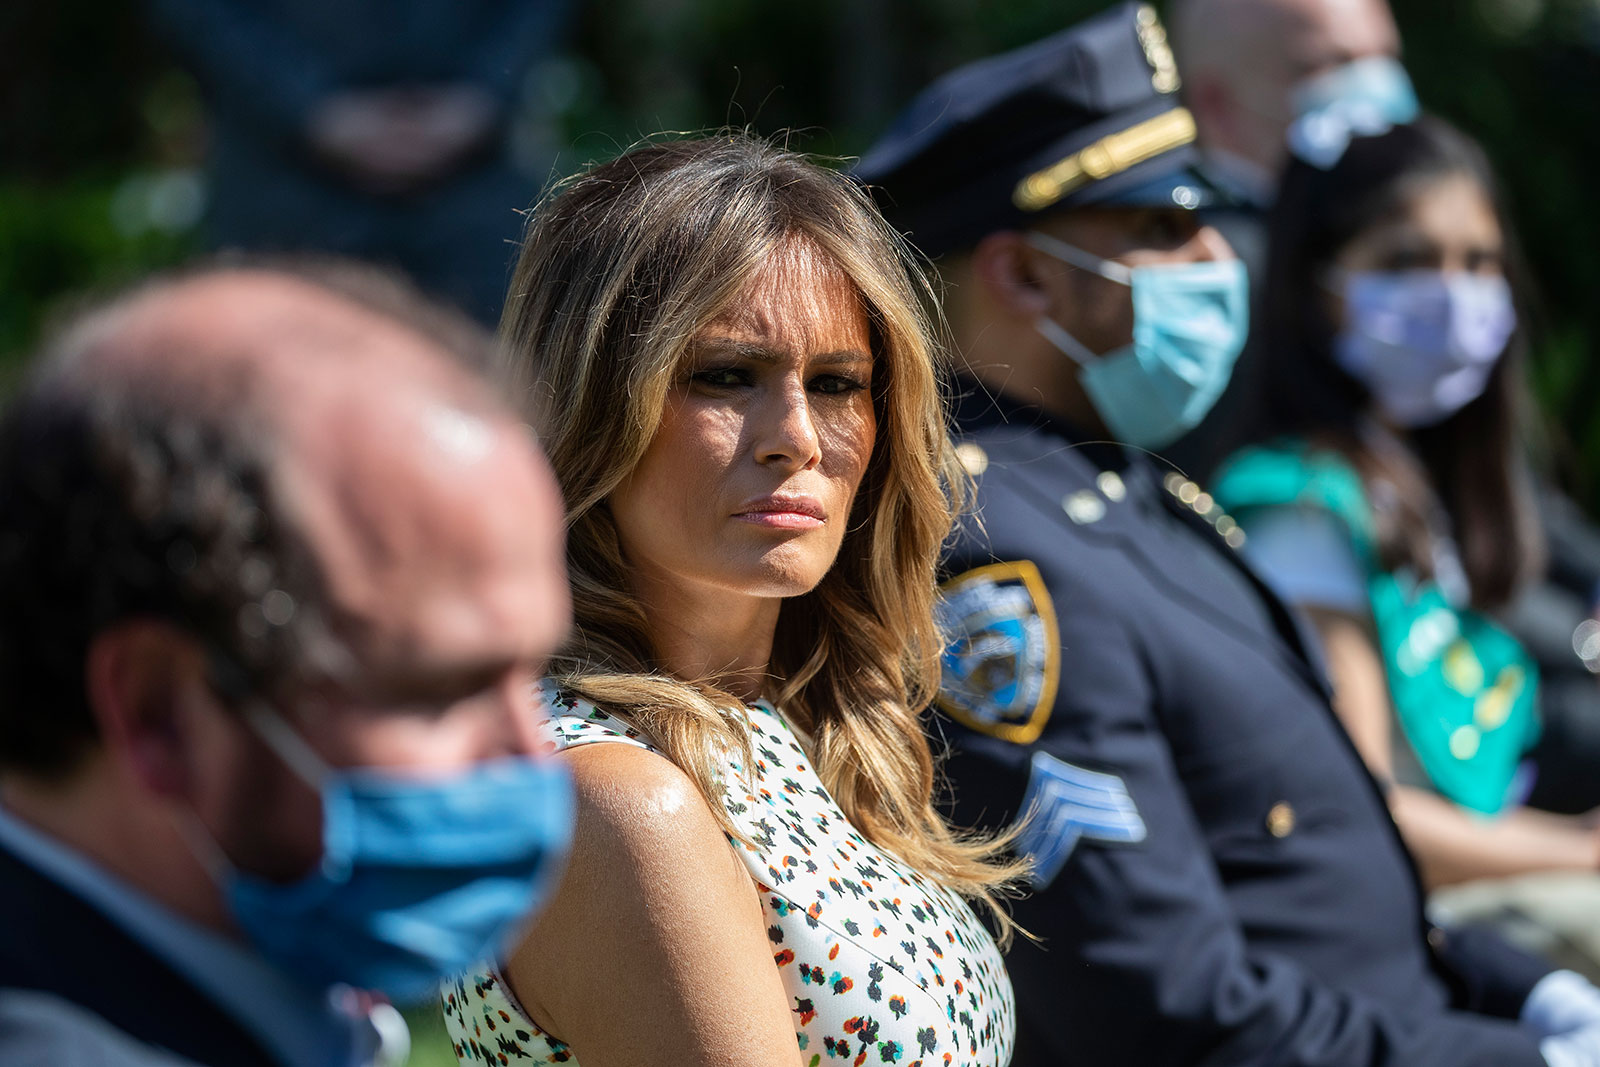 First Lady Melania Trump is seated as US President Donald Trump speaks during a presidential recognition ceremony in the Rose Garden of the White House on May 15 in Washington.